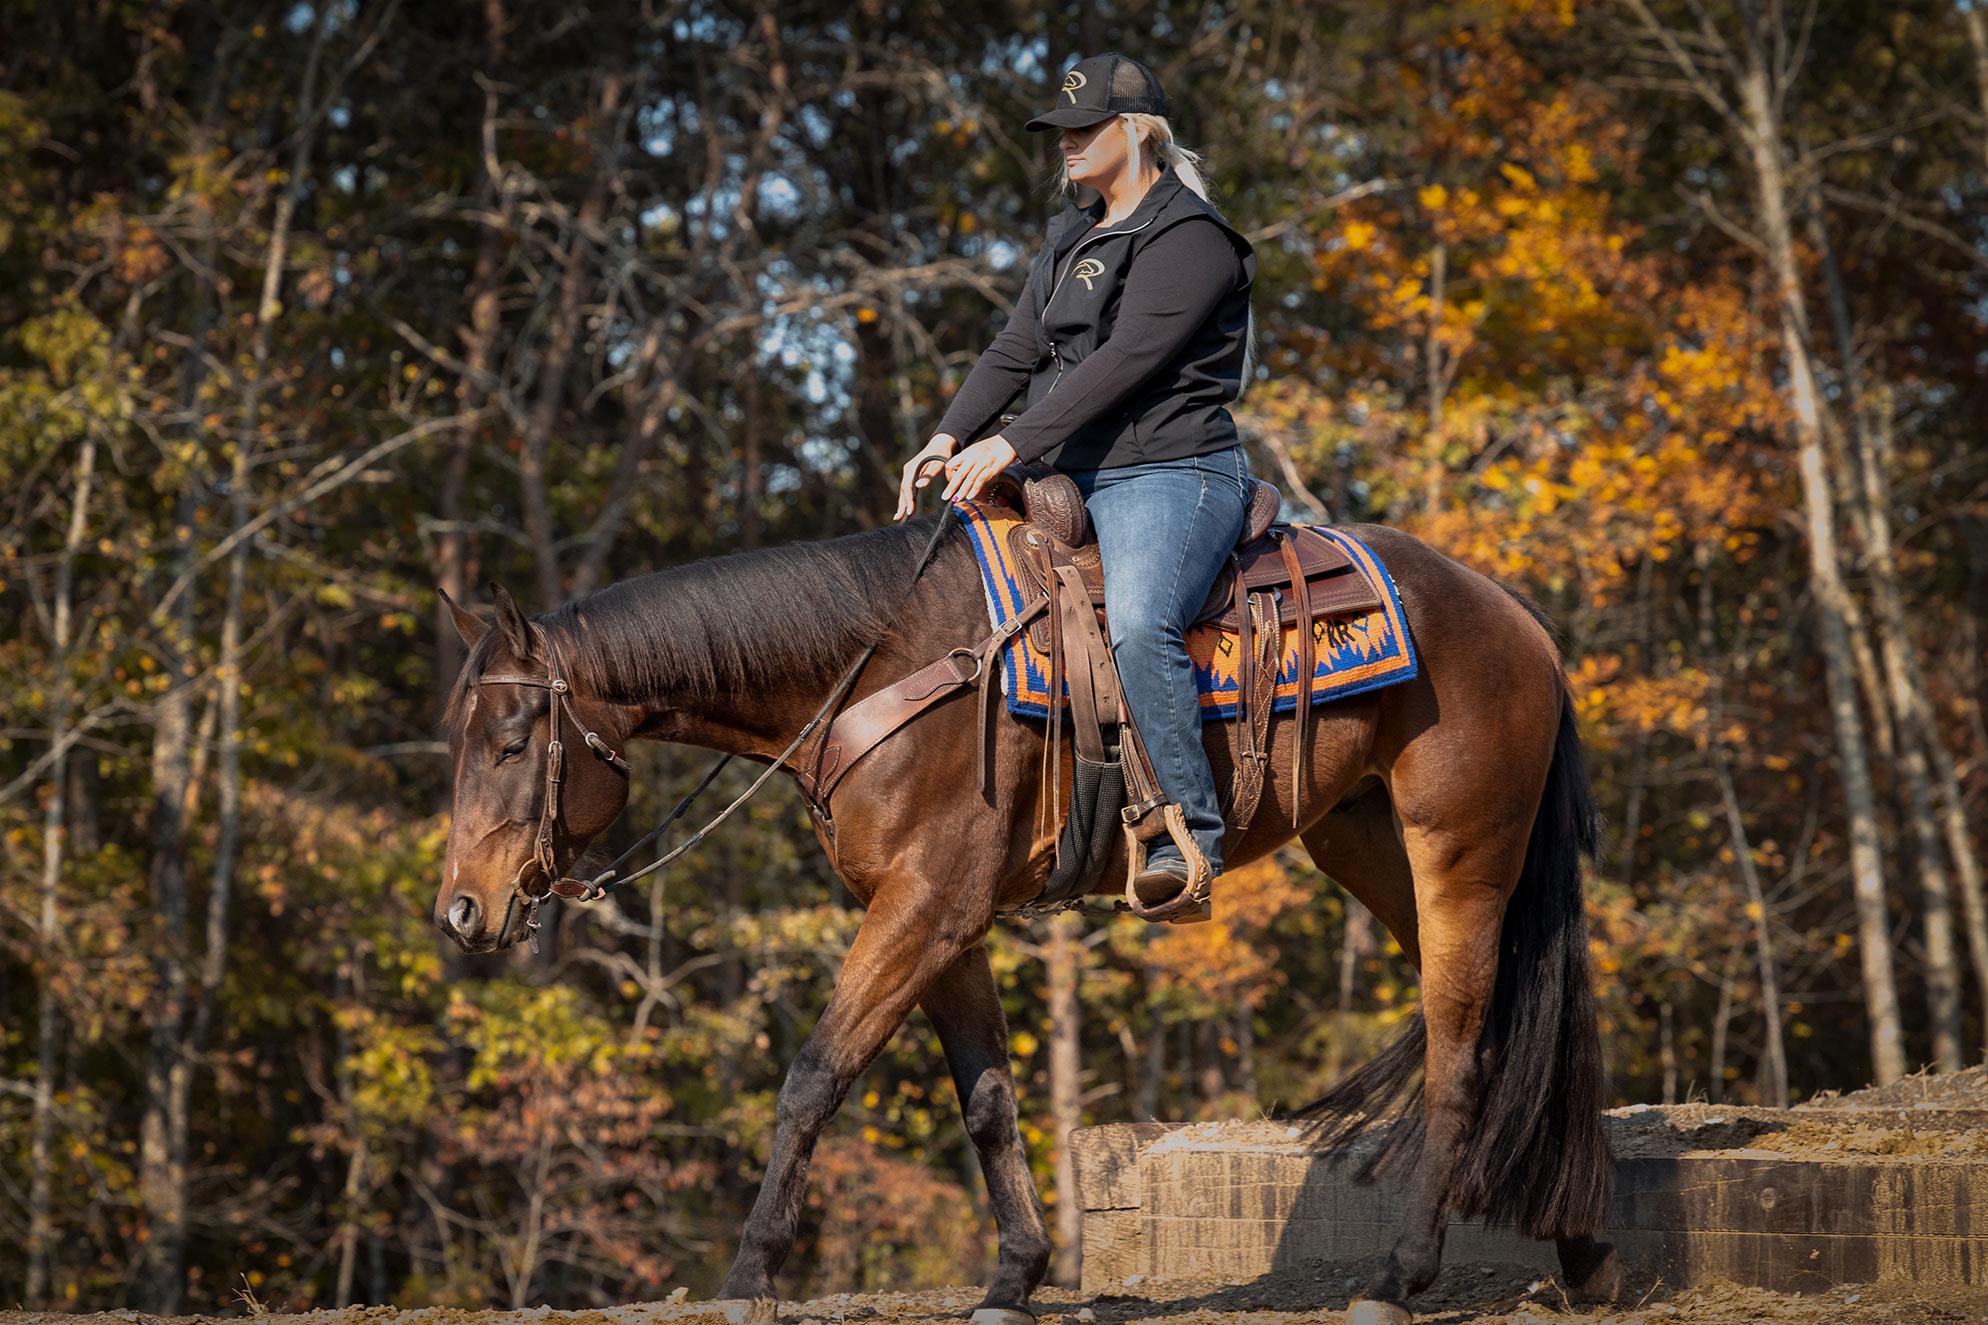 018-Ace-Luxury-Trail-Horse-For-Sale